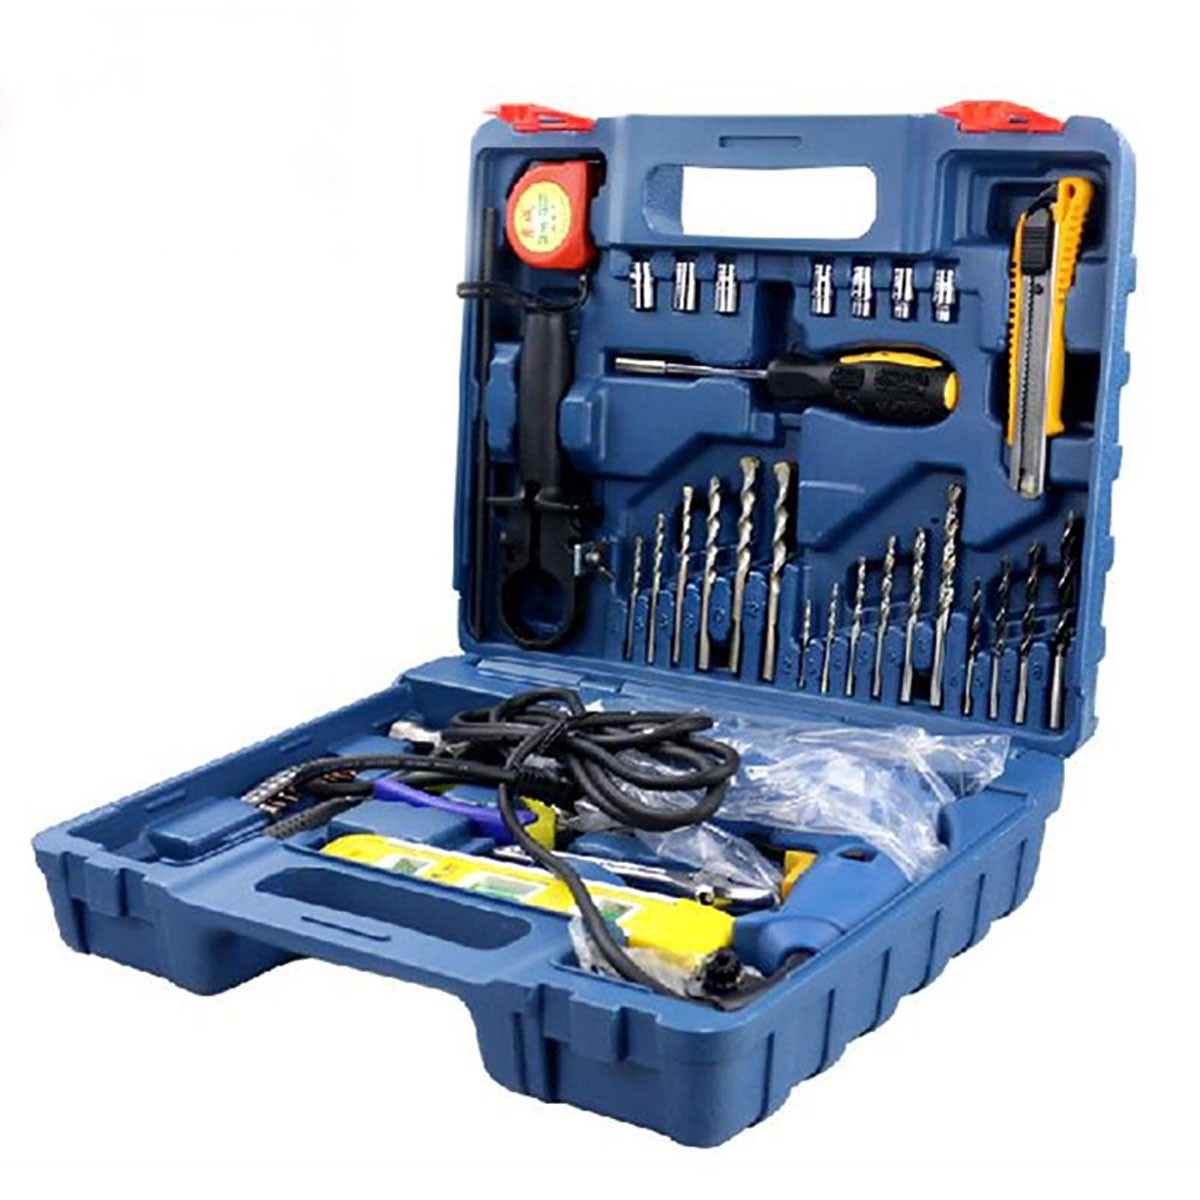 Dongcheng Tool Kit Set Z1J-FF04-13 500W 2600rpm and Power Drill